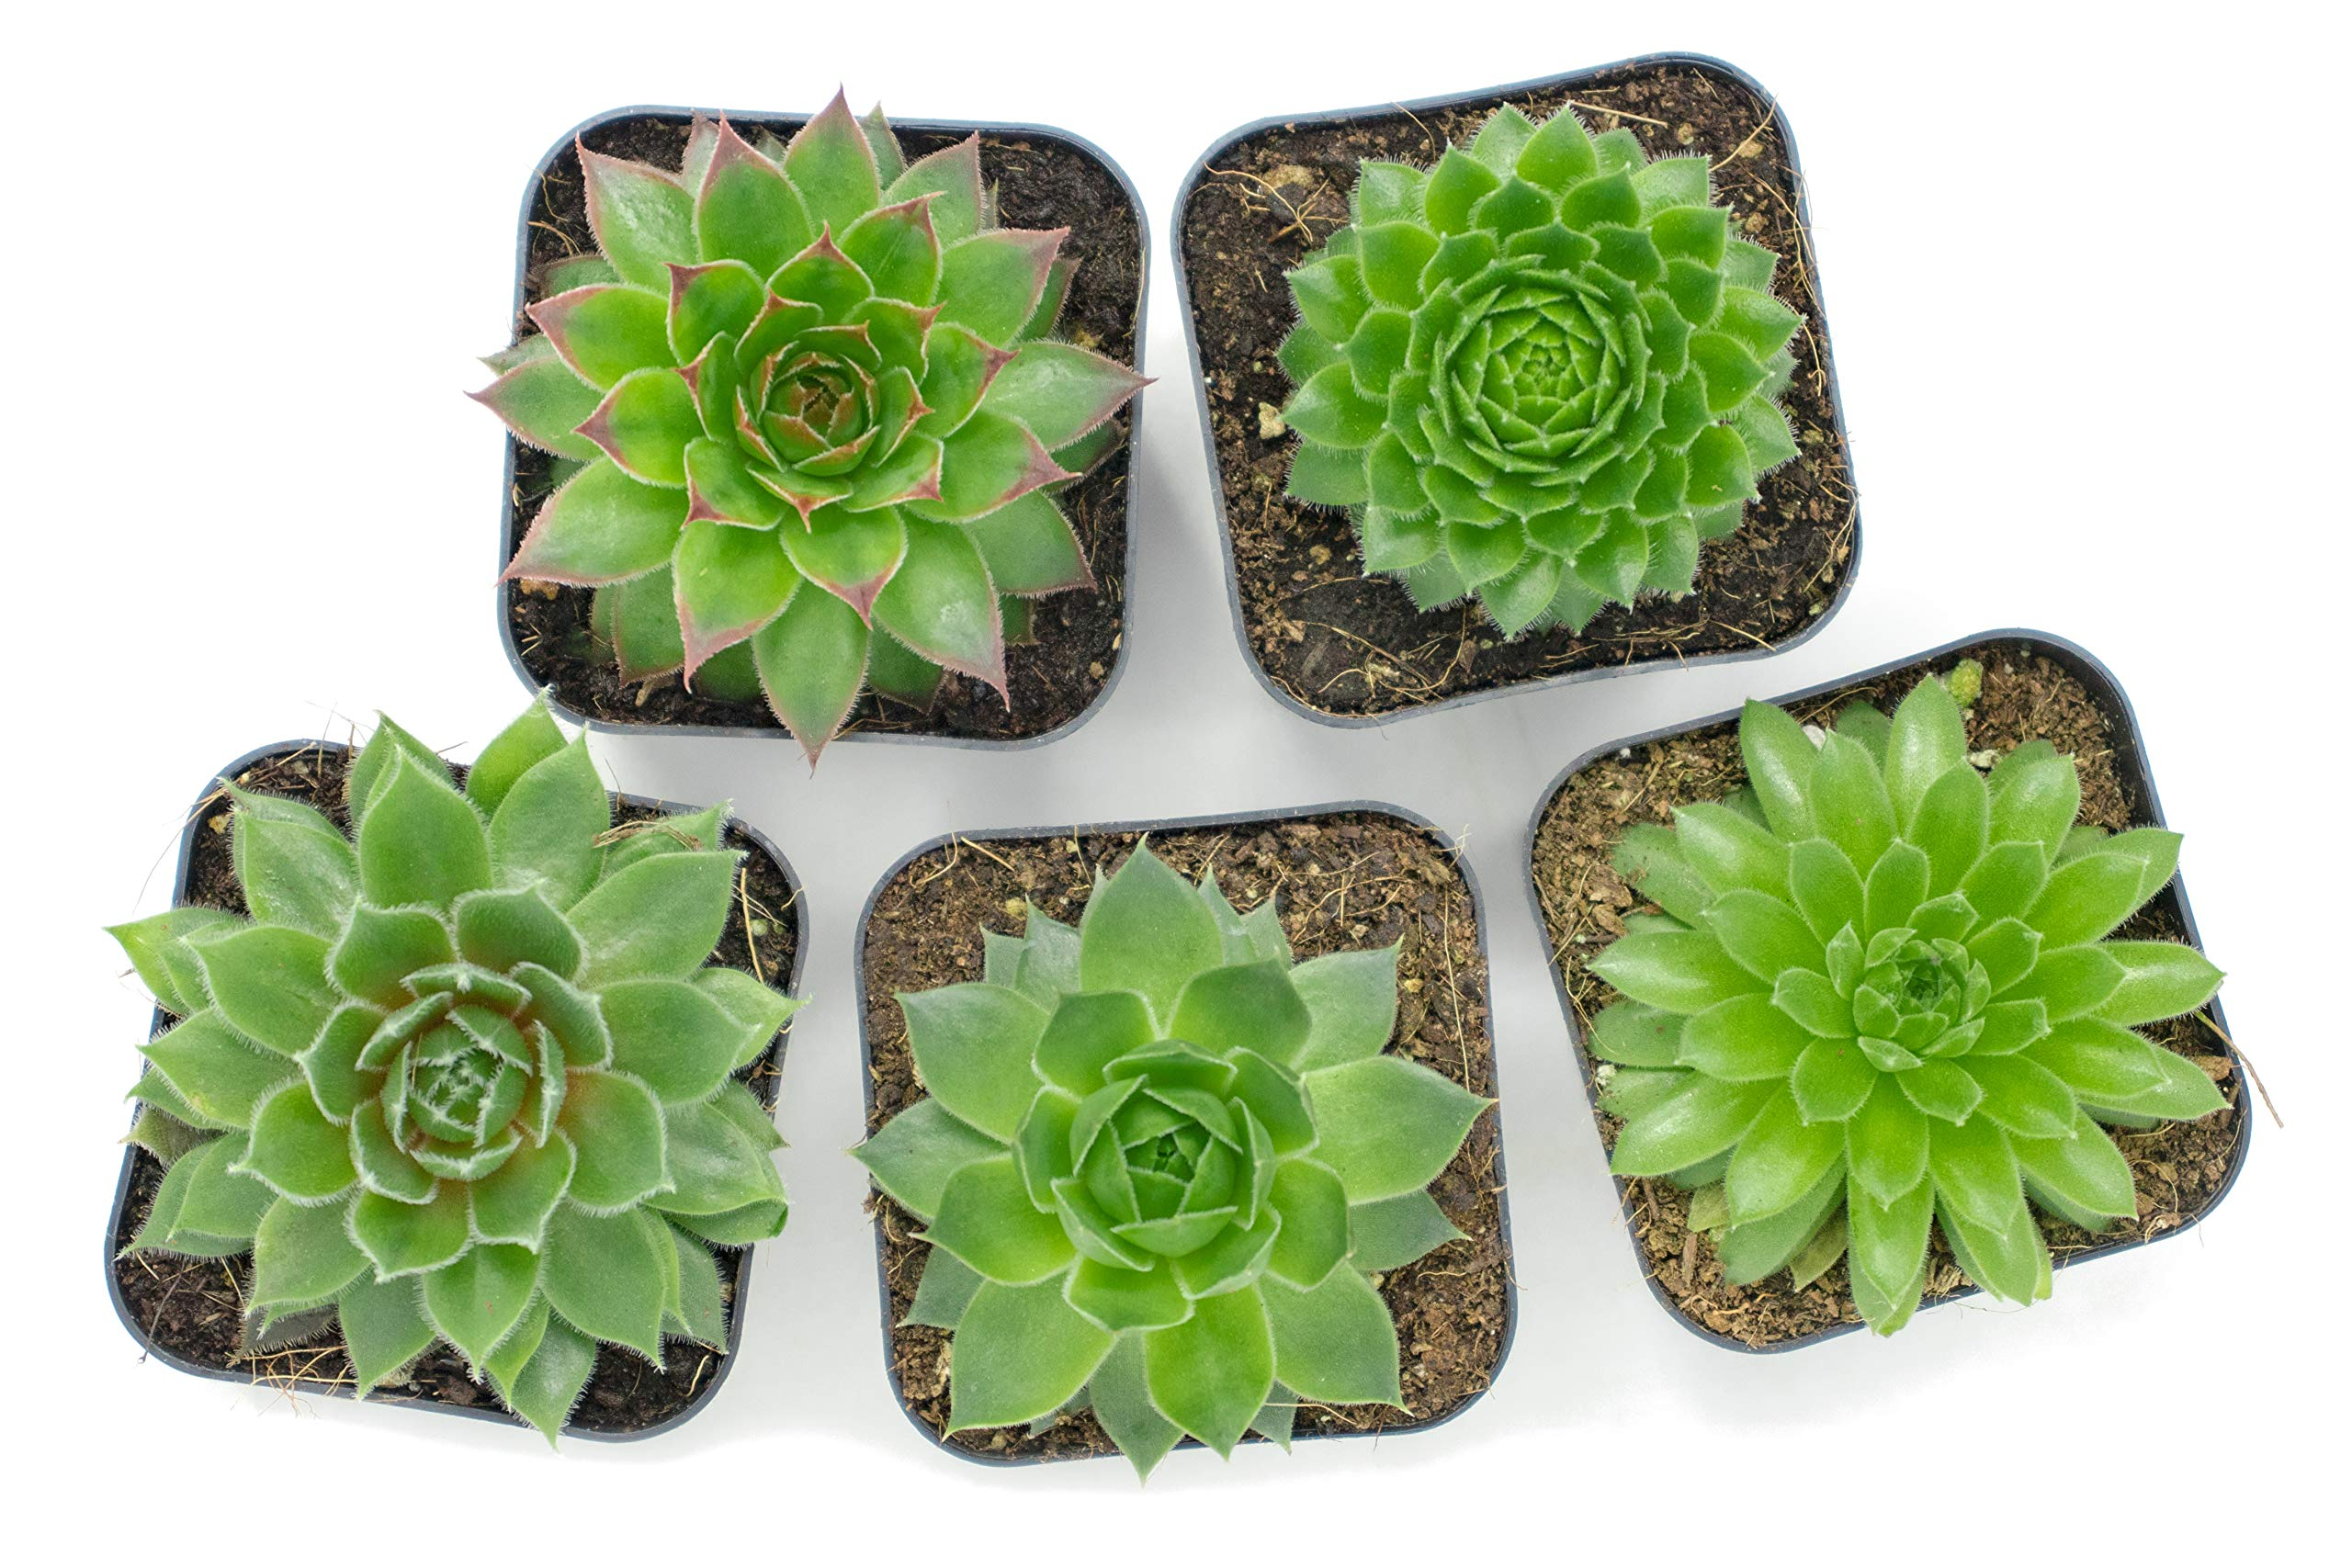 Succulent Plants | 20 Sempervivum Succulents | Rooted in Planter Pots with Soil | Real Live Indoor Plants | Gifts or Room Decor by Plants for Pets by Plants for Pets (Image #6)